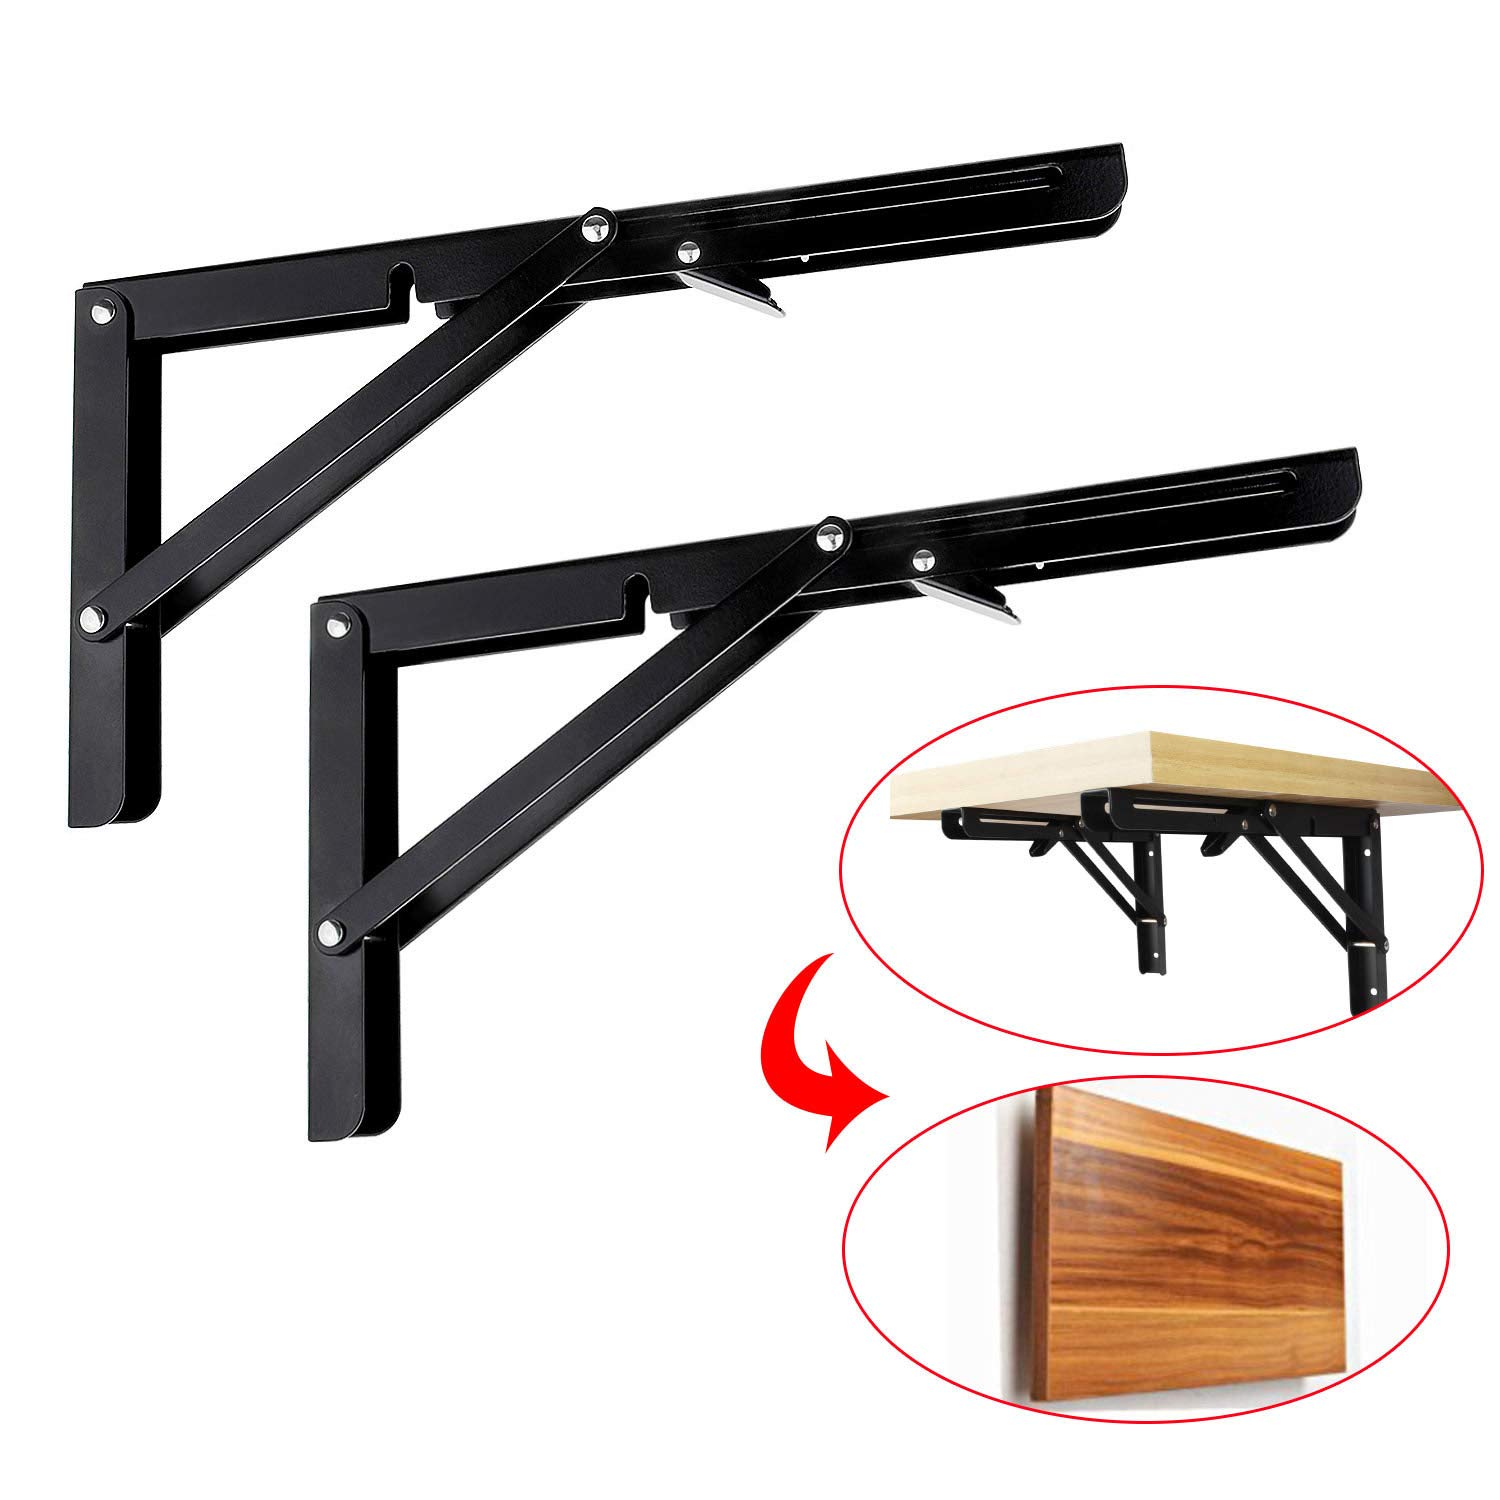 2 Pcs Folding Shelf Brackets 12 inch Black Heavy Duty Metal Triangle Table Bench Collapsible Shelf Bracket, Shelf Support Bracket Hinge Wall Mounted by STARVAST with Mounting Screws